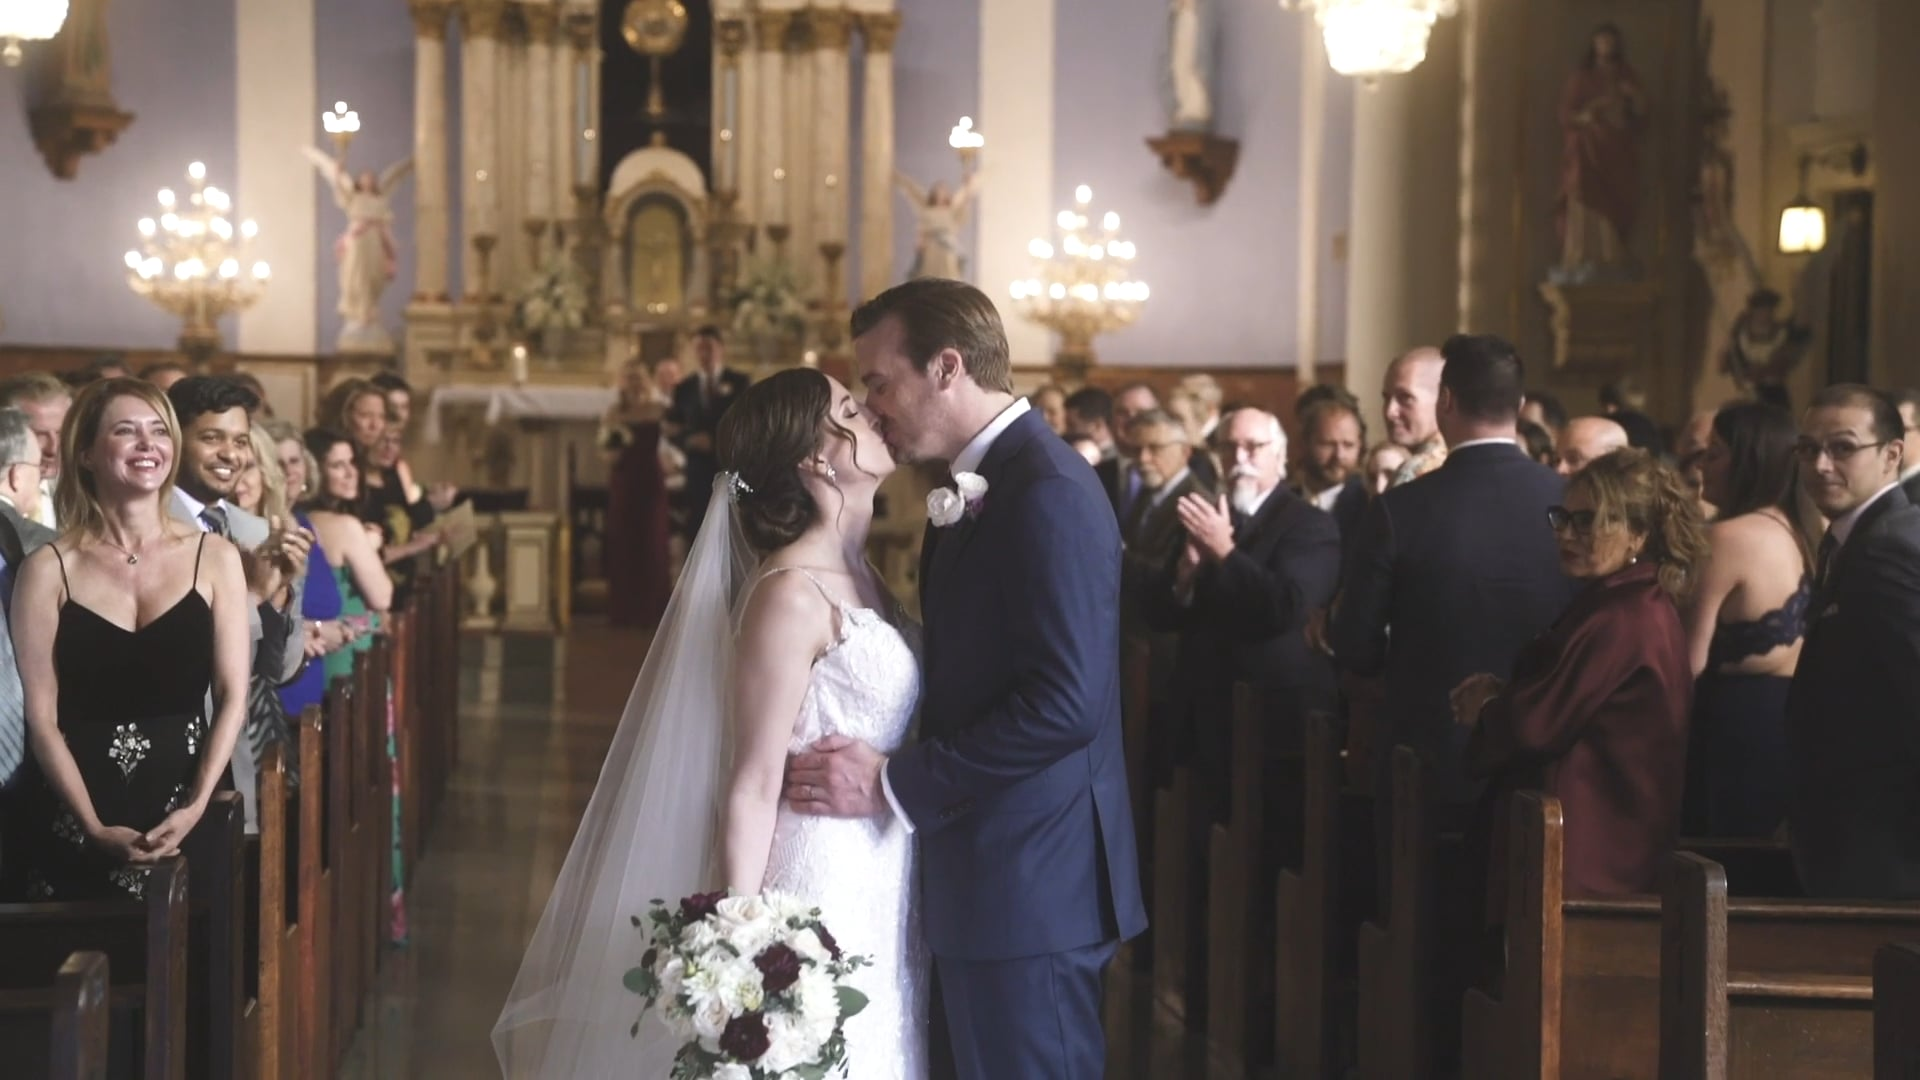 Pure French Quarter Elegance, Charm and New Orleans Romance | Kim & Jack